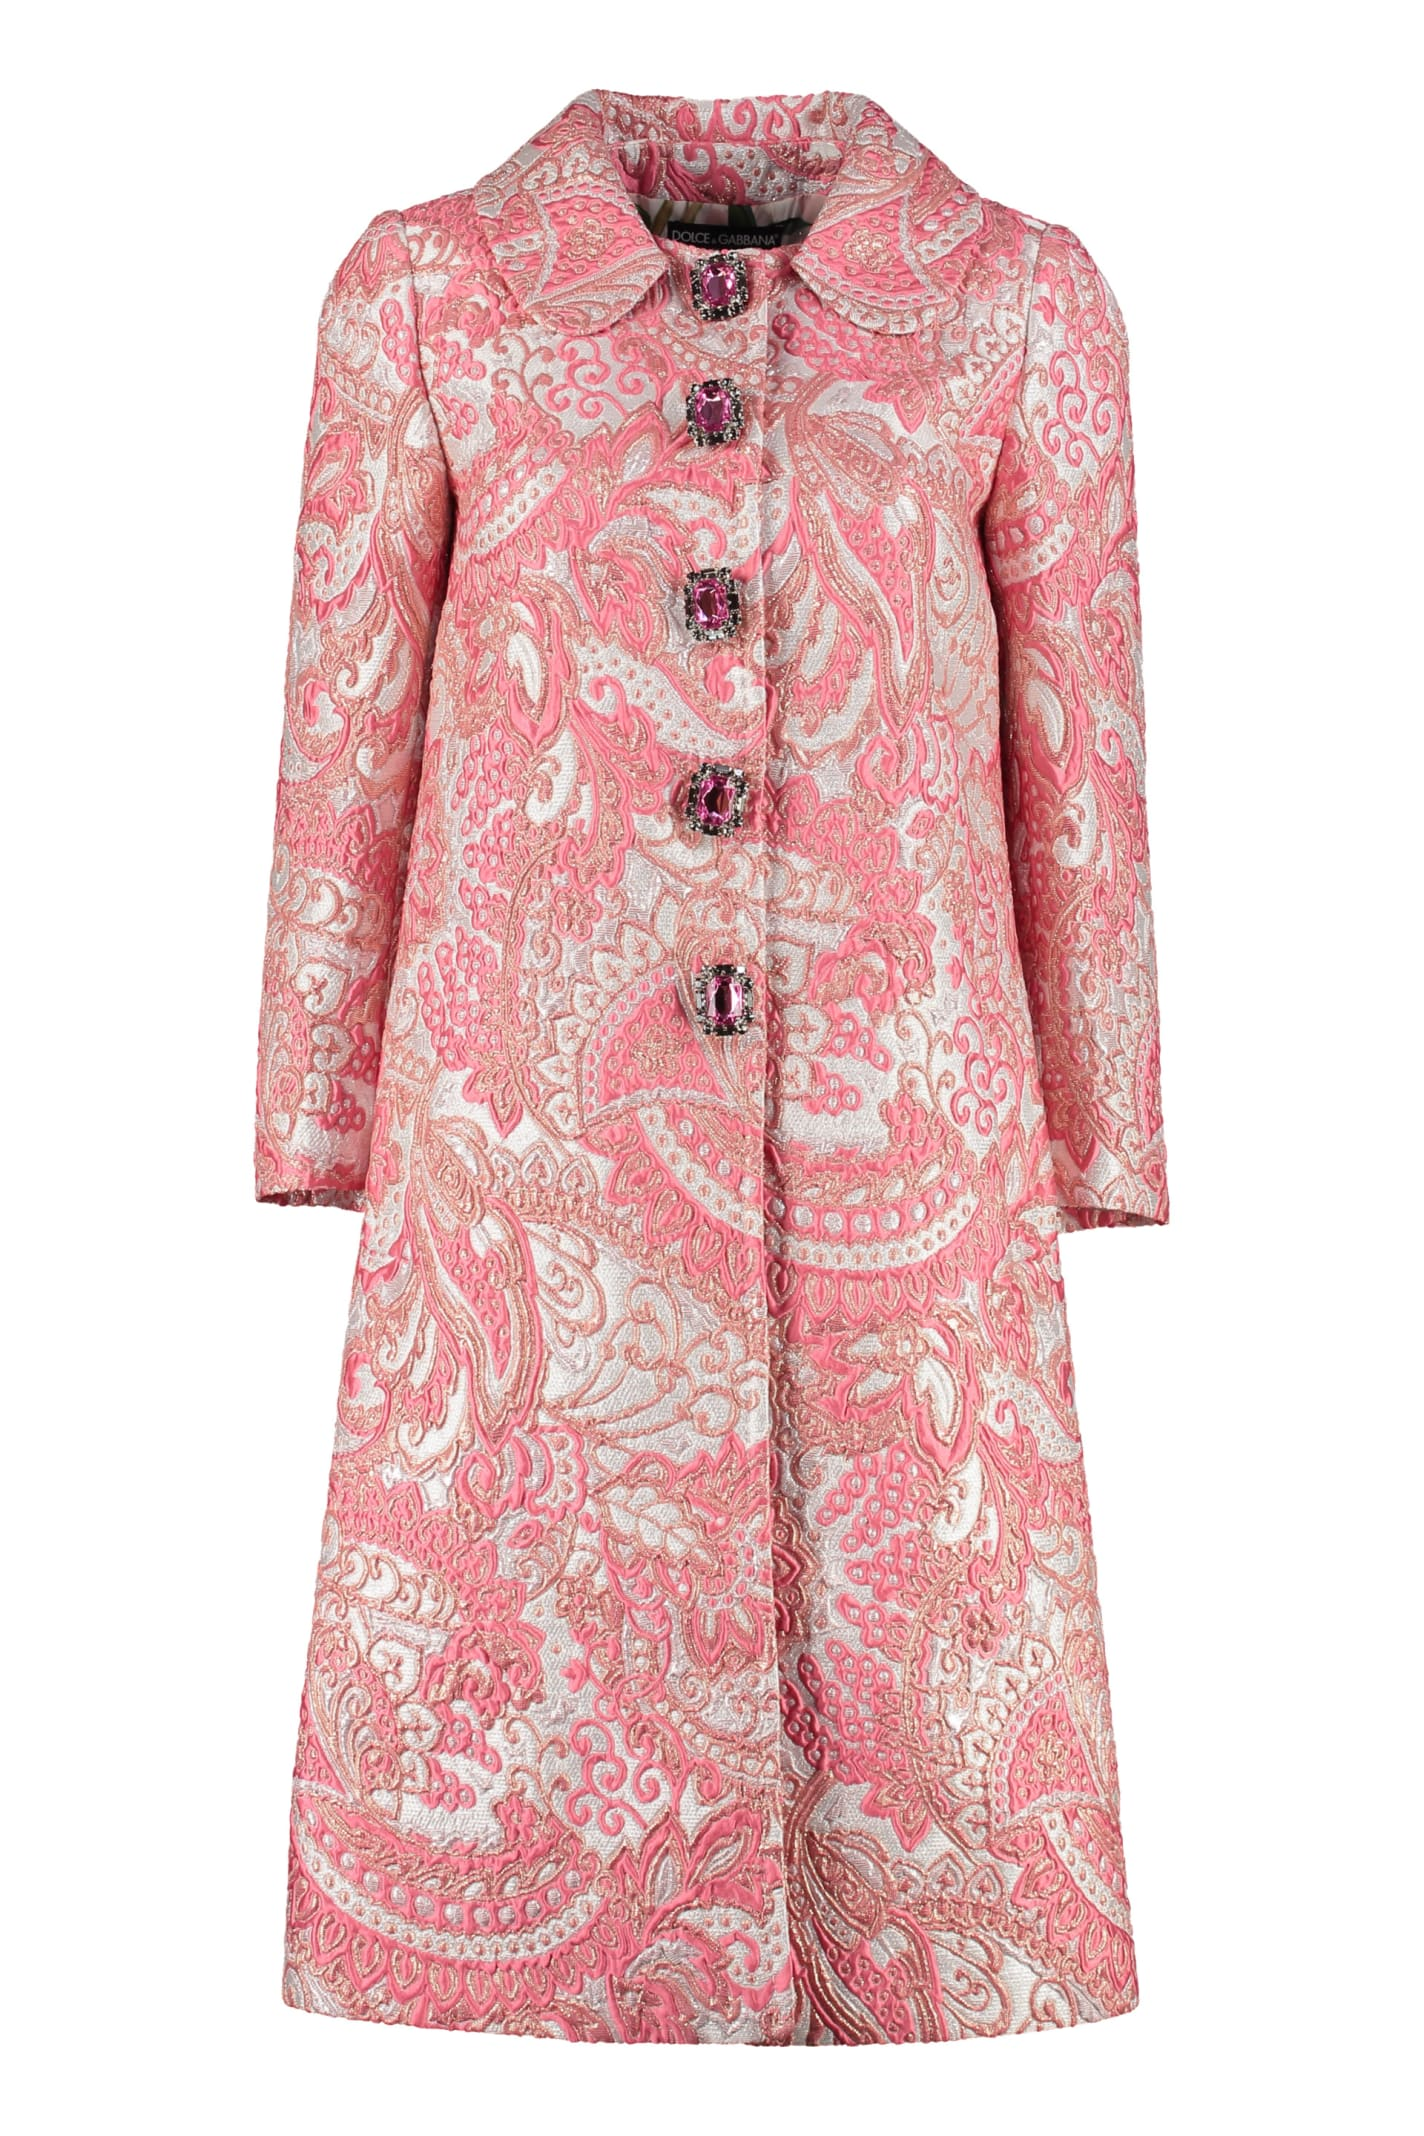 Dolce & Gabbana Lamé Jacquard Coat With Embellished Buttons